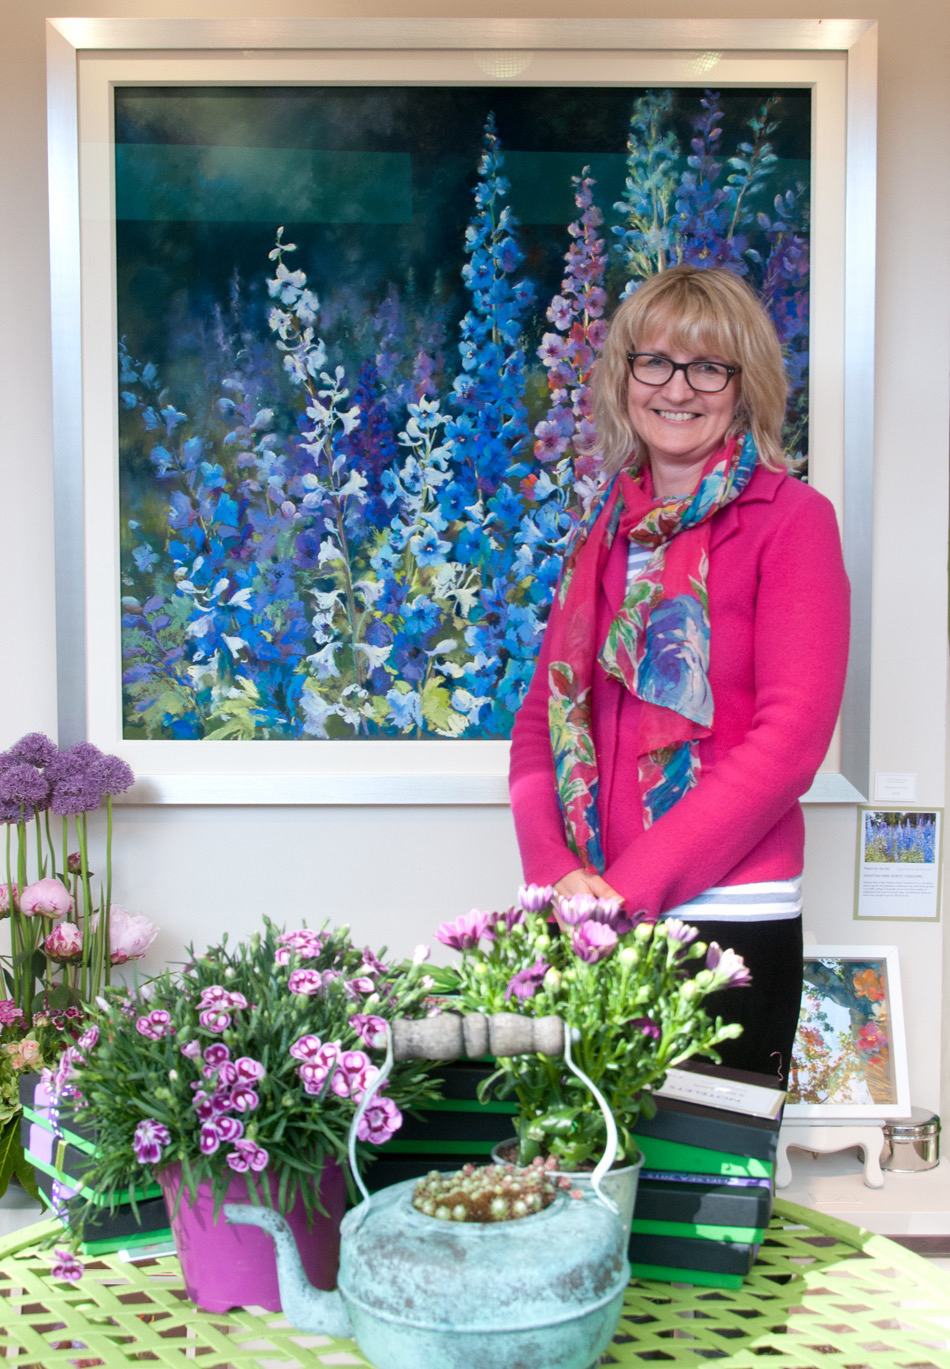 Centre Piece Painting at Chelsea Flower Show 2015